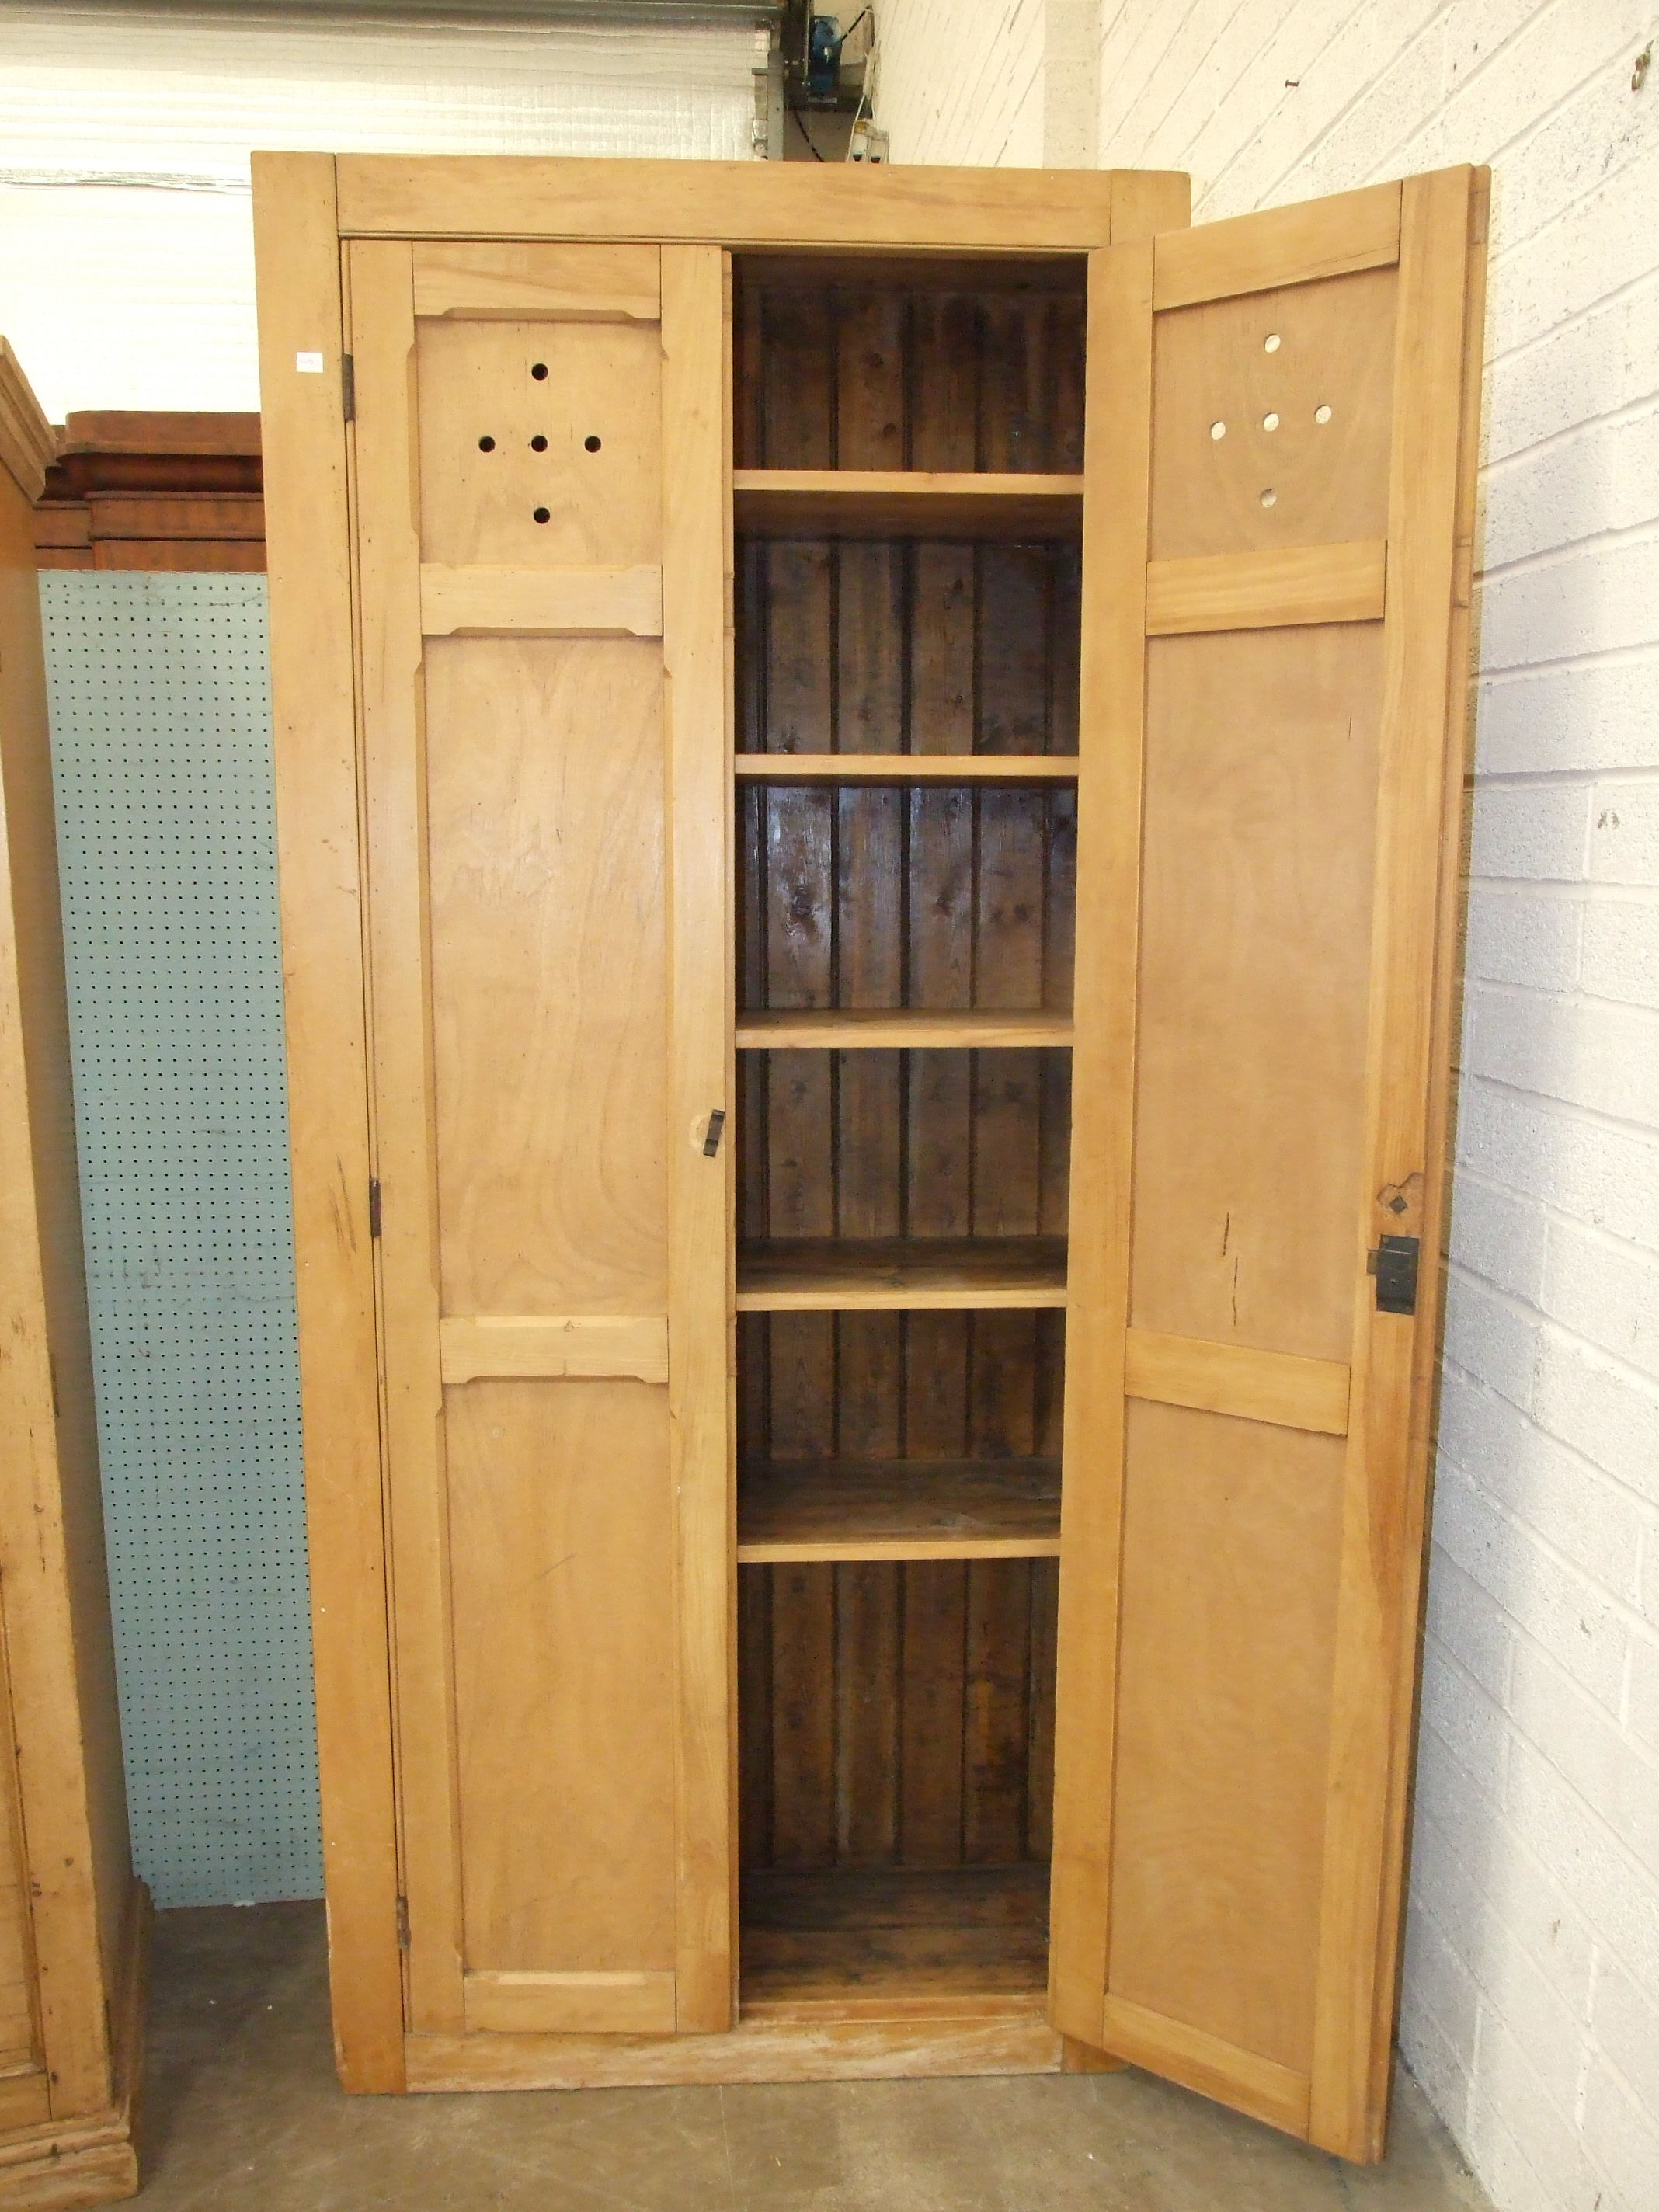 A tall stripped pine two-door larder cupboard with shelved interior, 97cm wide, 220cm high. - Image 2 of 2